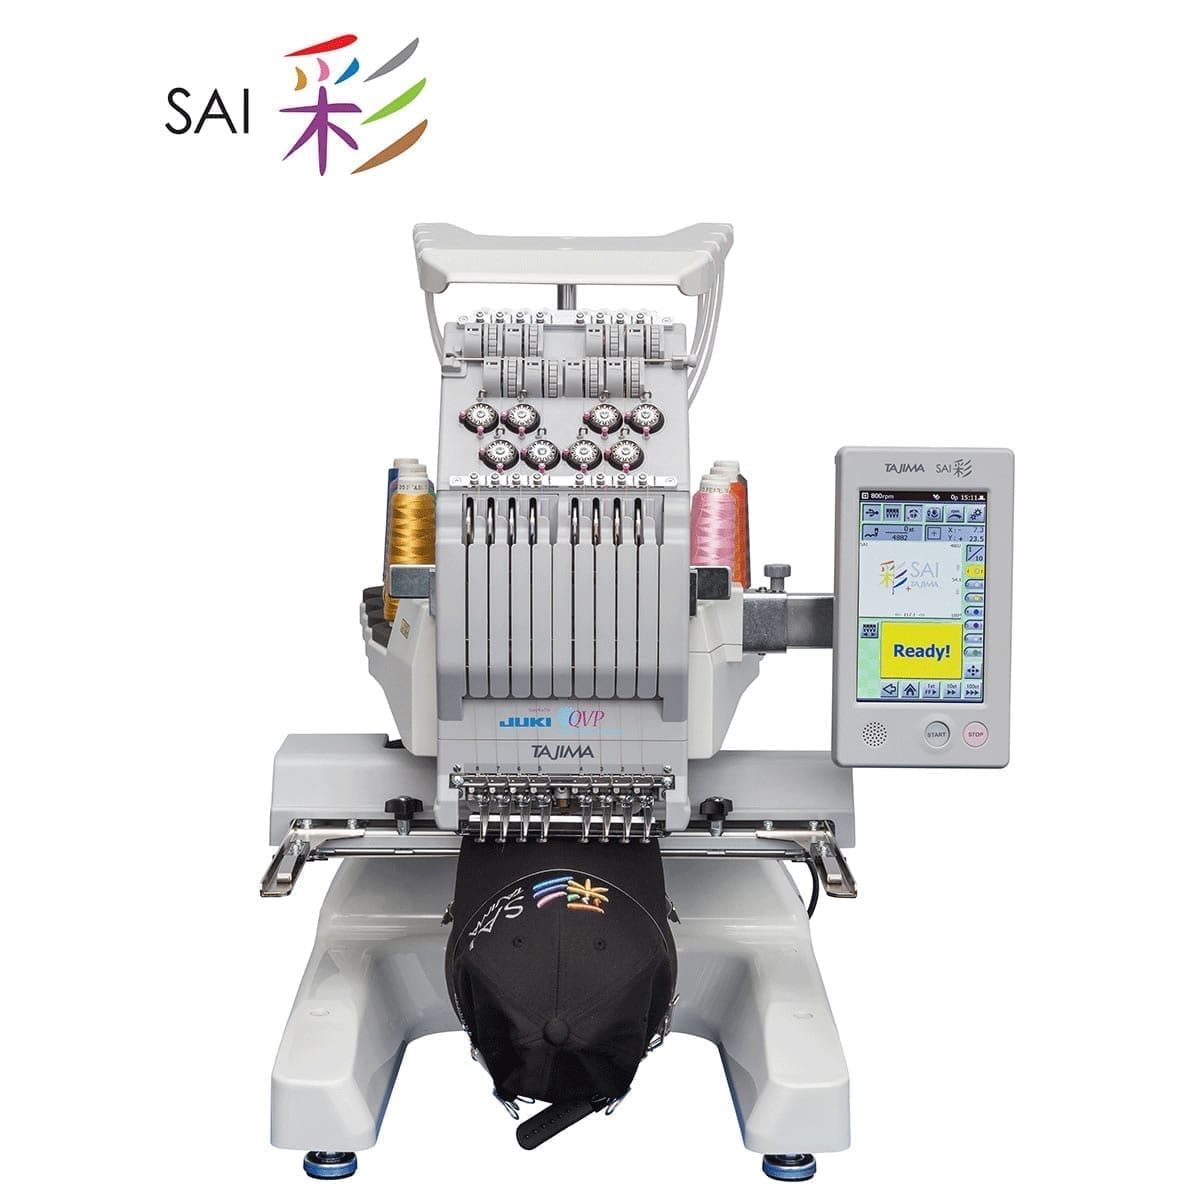 Juki Tajima Sai 8 Needle Embroidery Machine With Multi